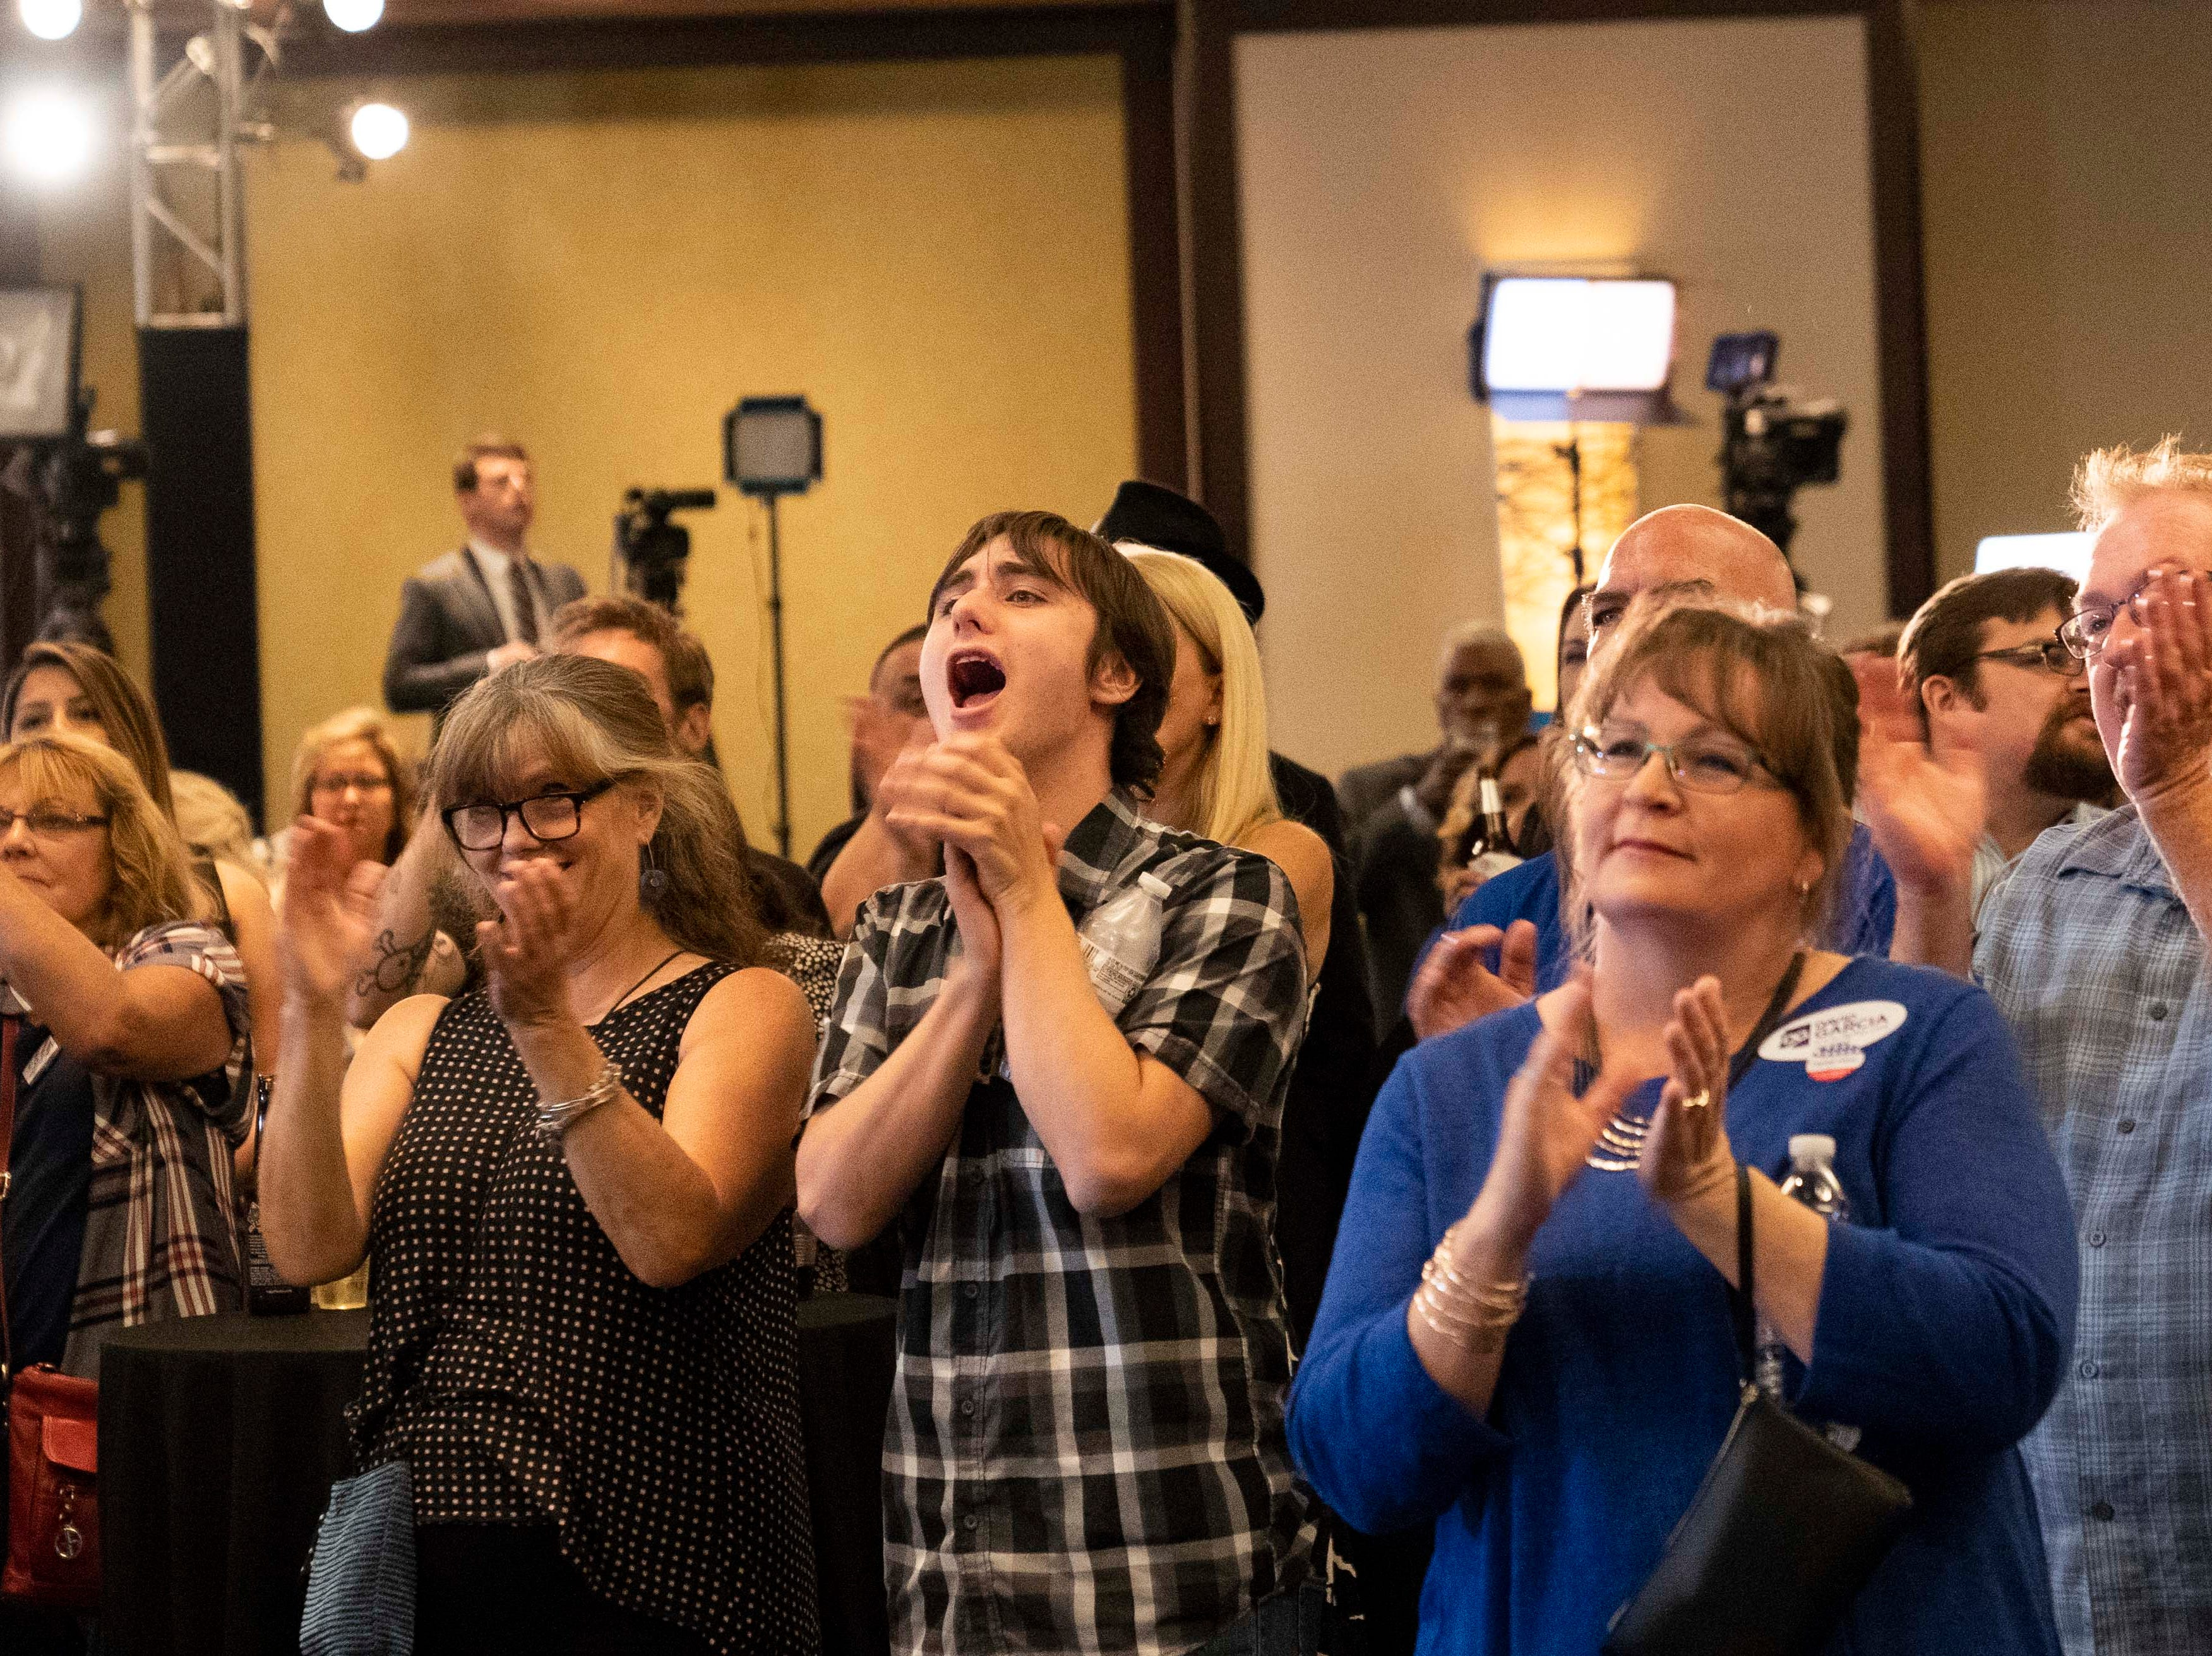 Democrat supporters cheer after hearing national results on CNN at the Renaissance Phoenix Downtown Hotel on Nov. 6, 2018.